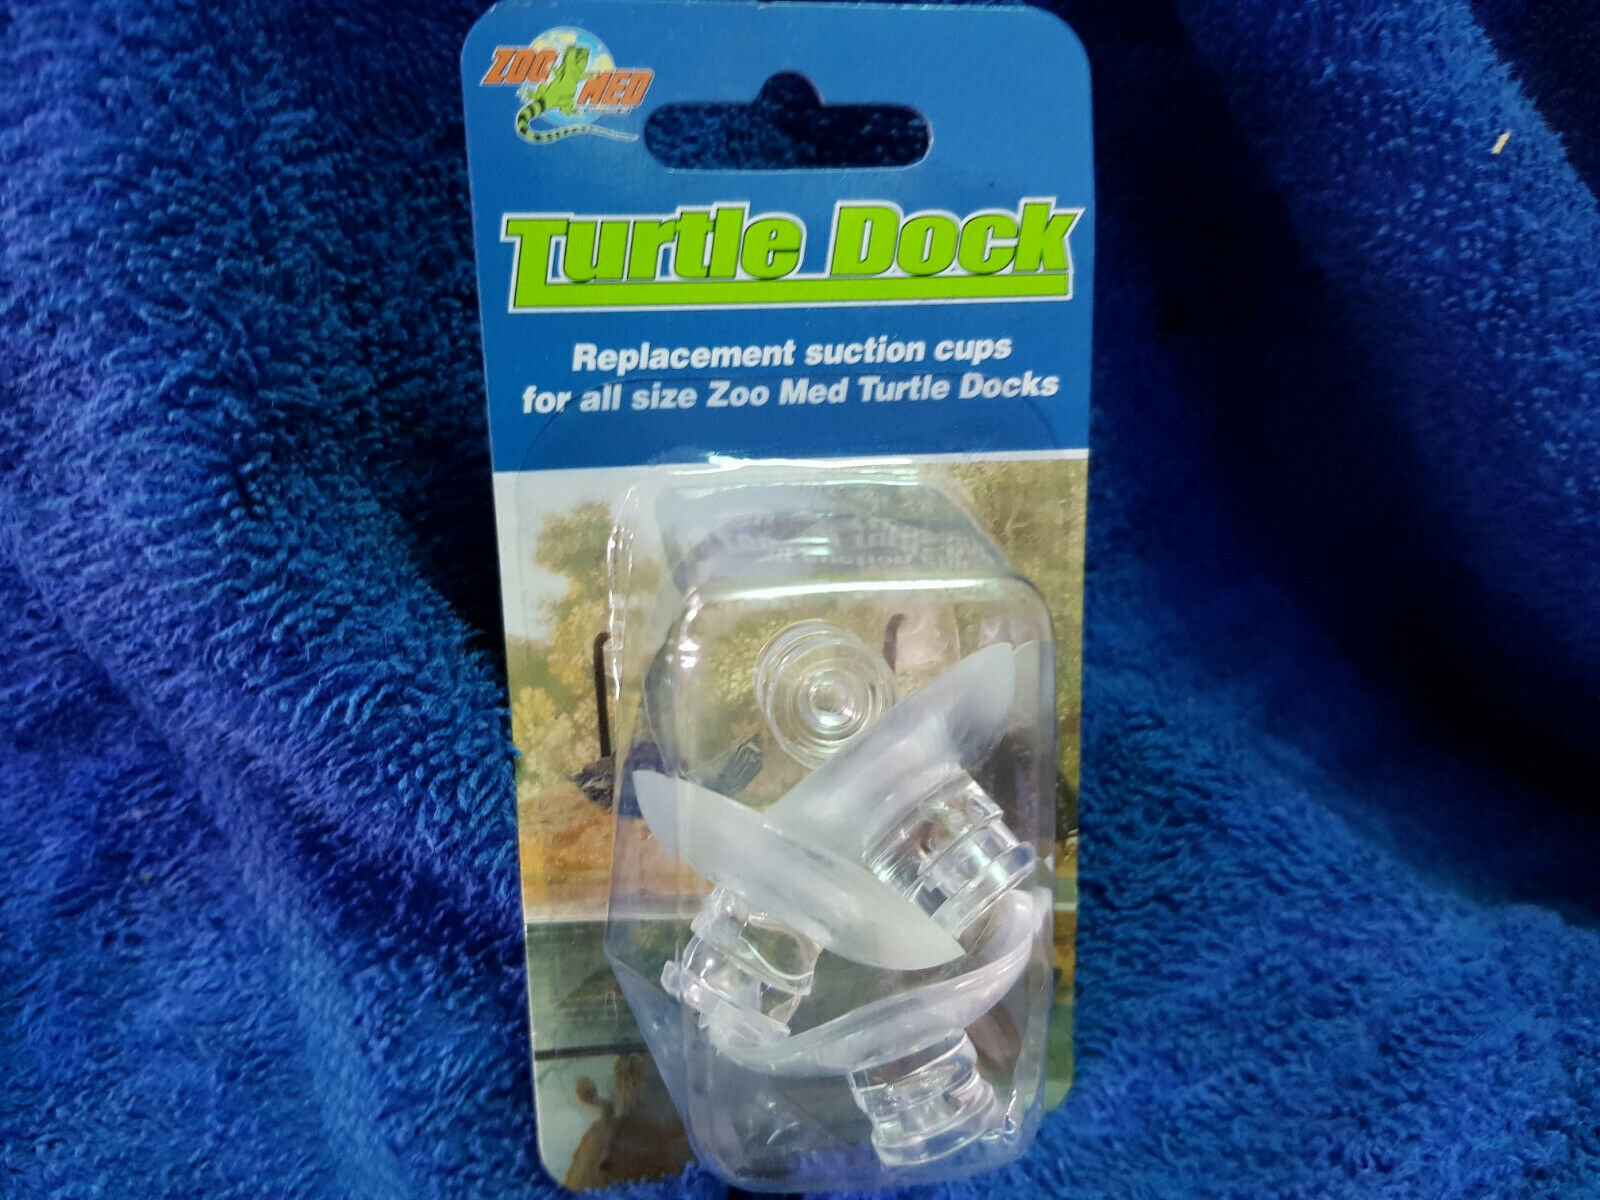 ZooMed Turtle Dock replacement suction cups, pack of 4